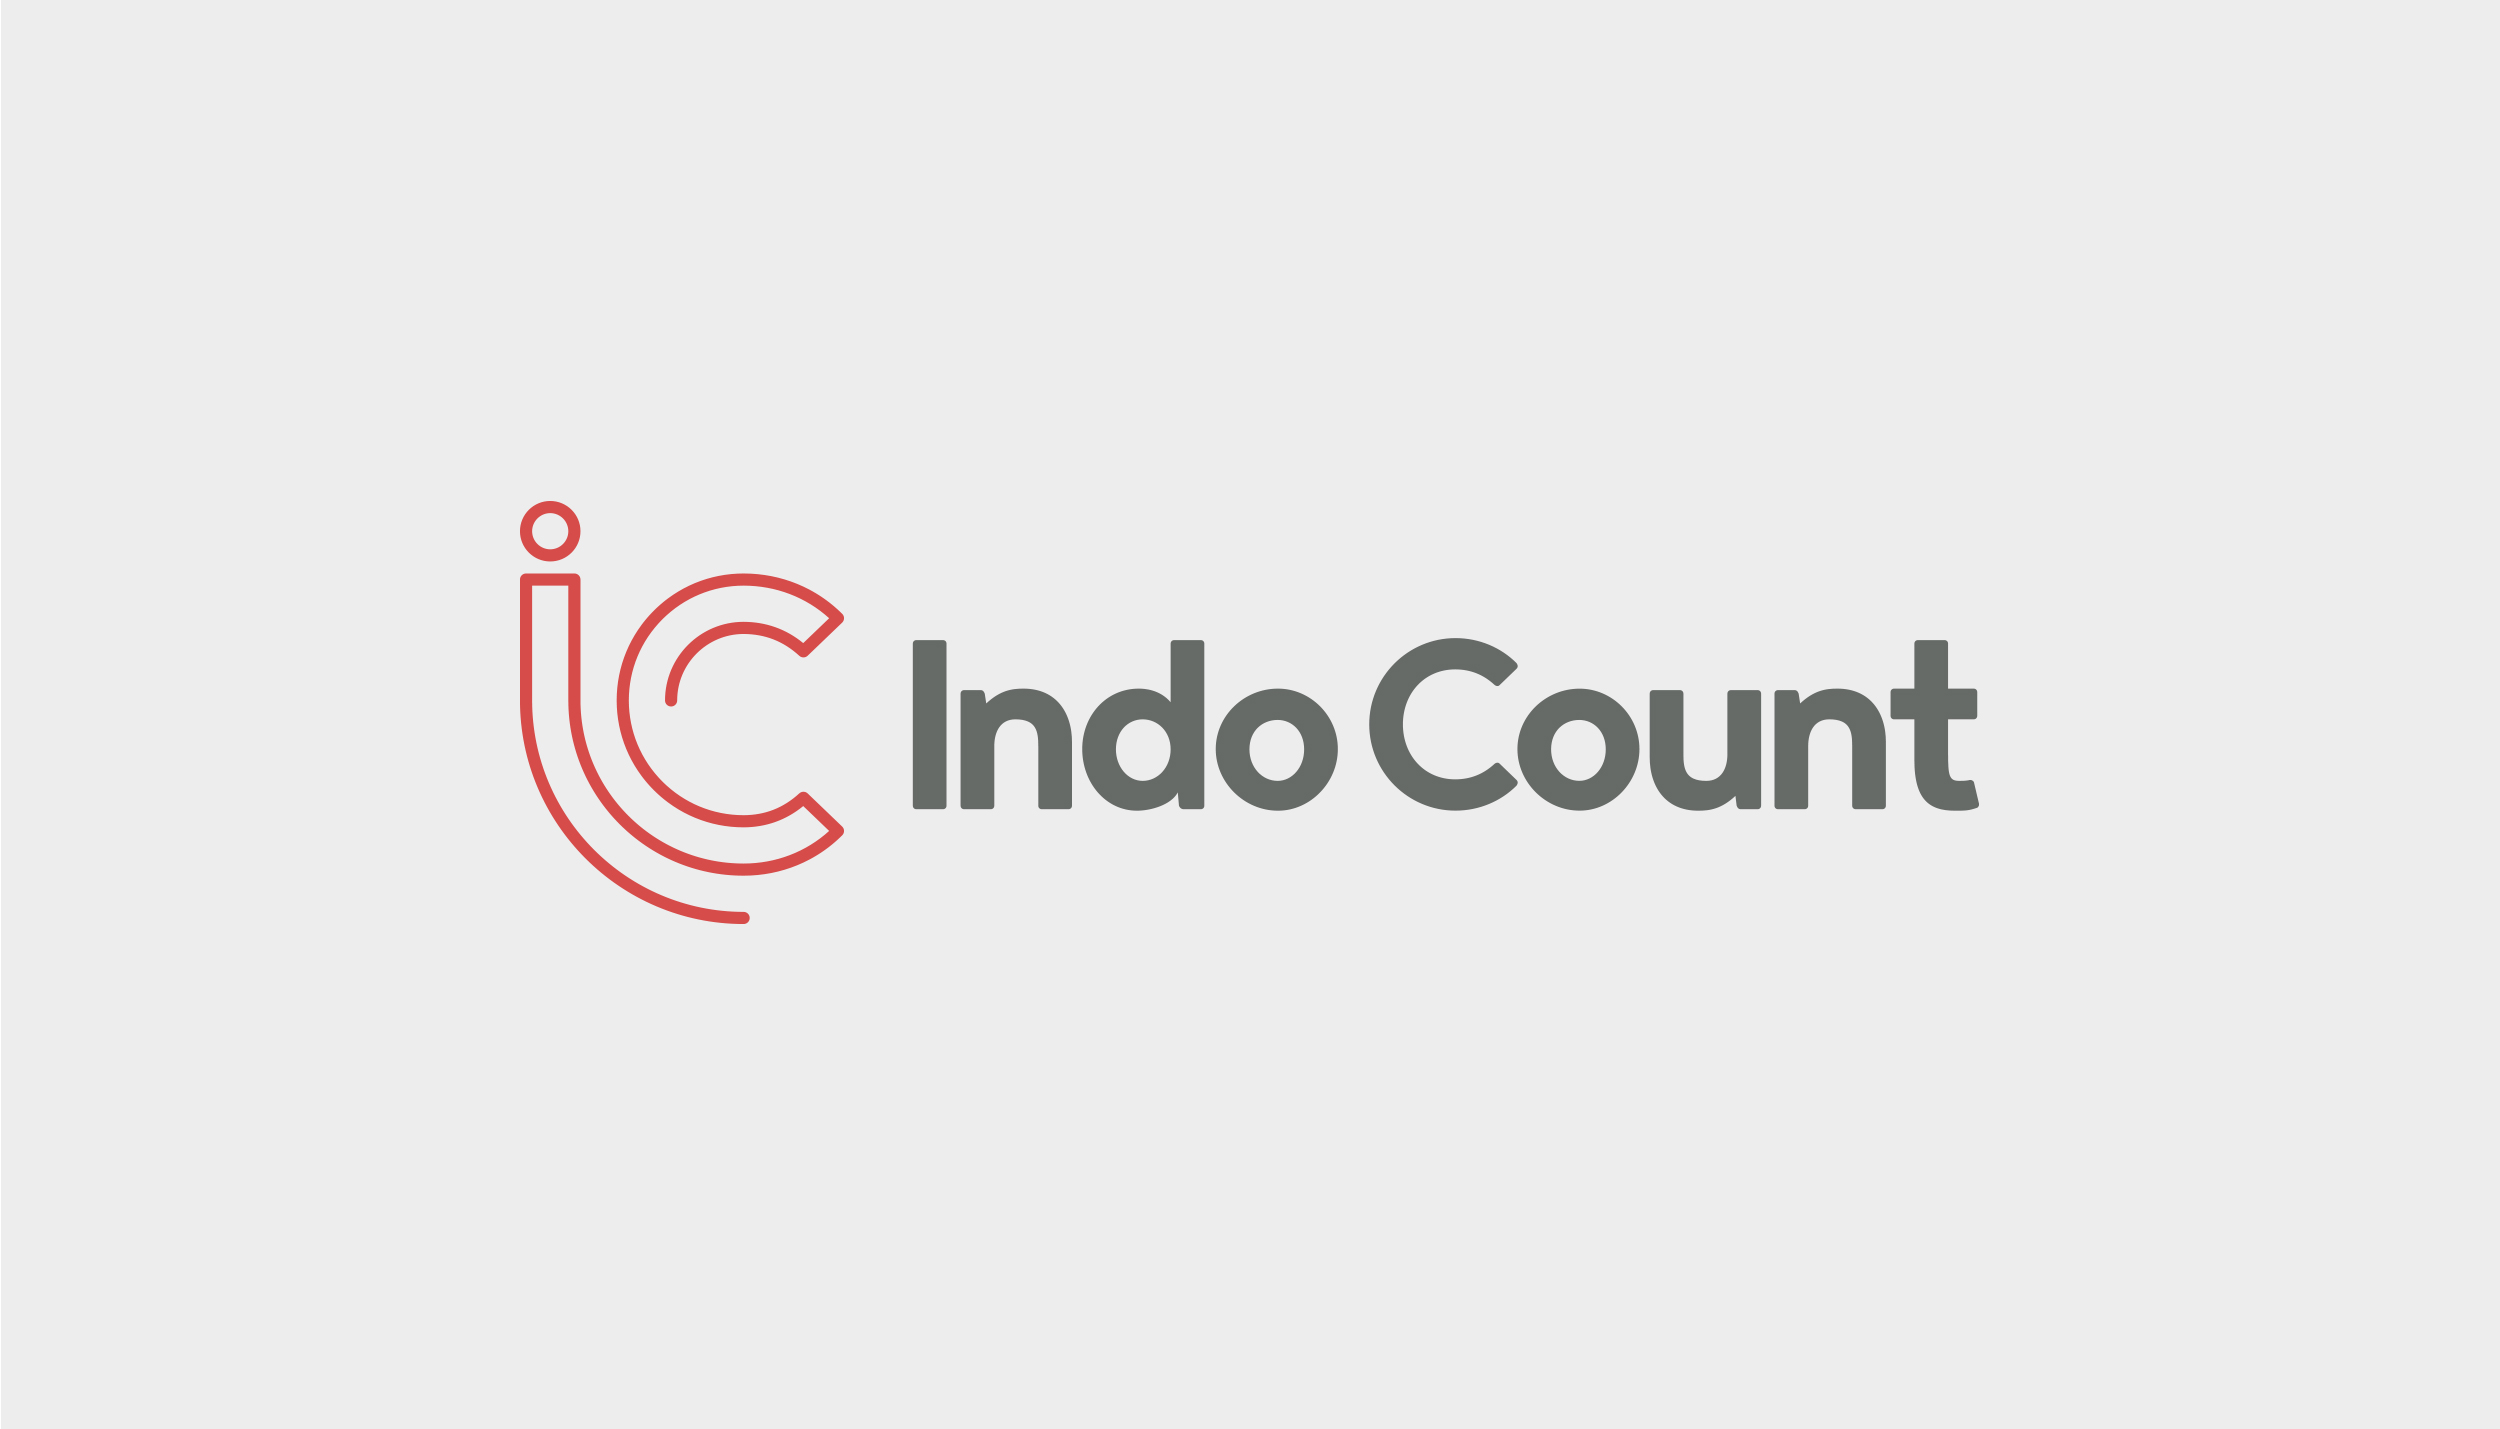 indo_count_logo.jpg